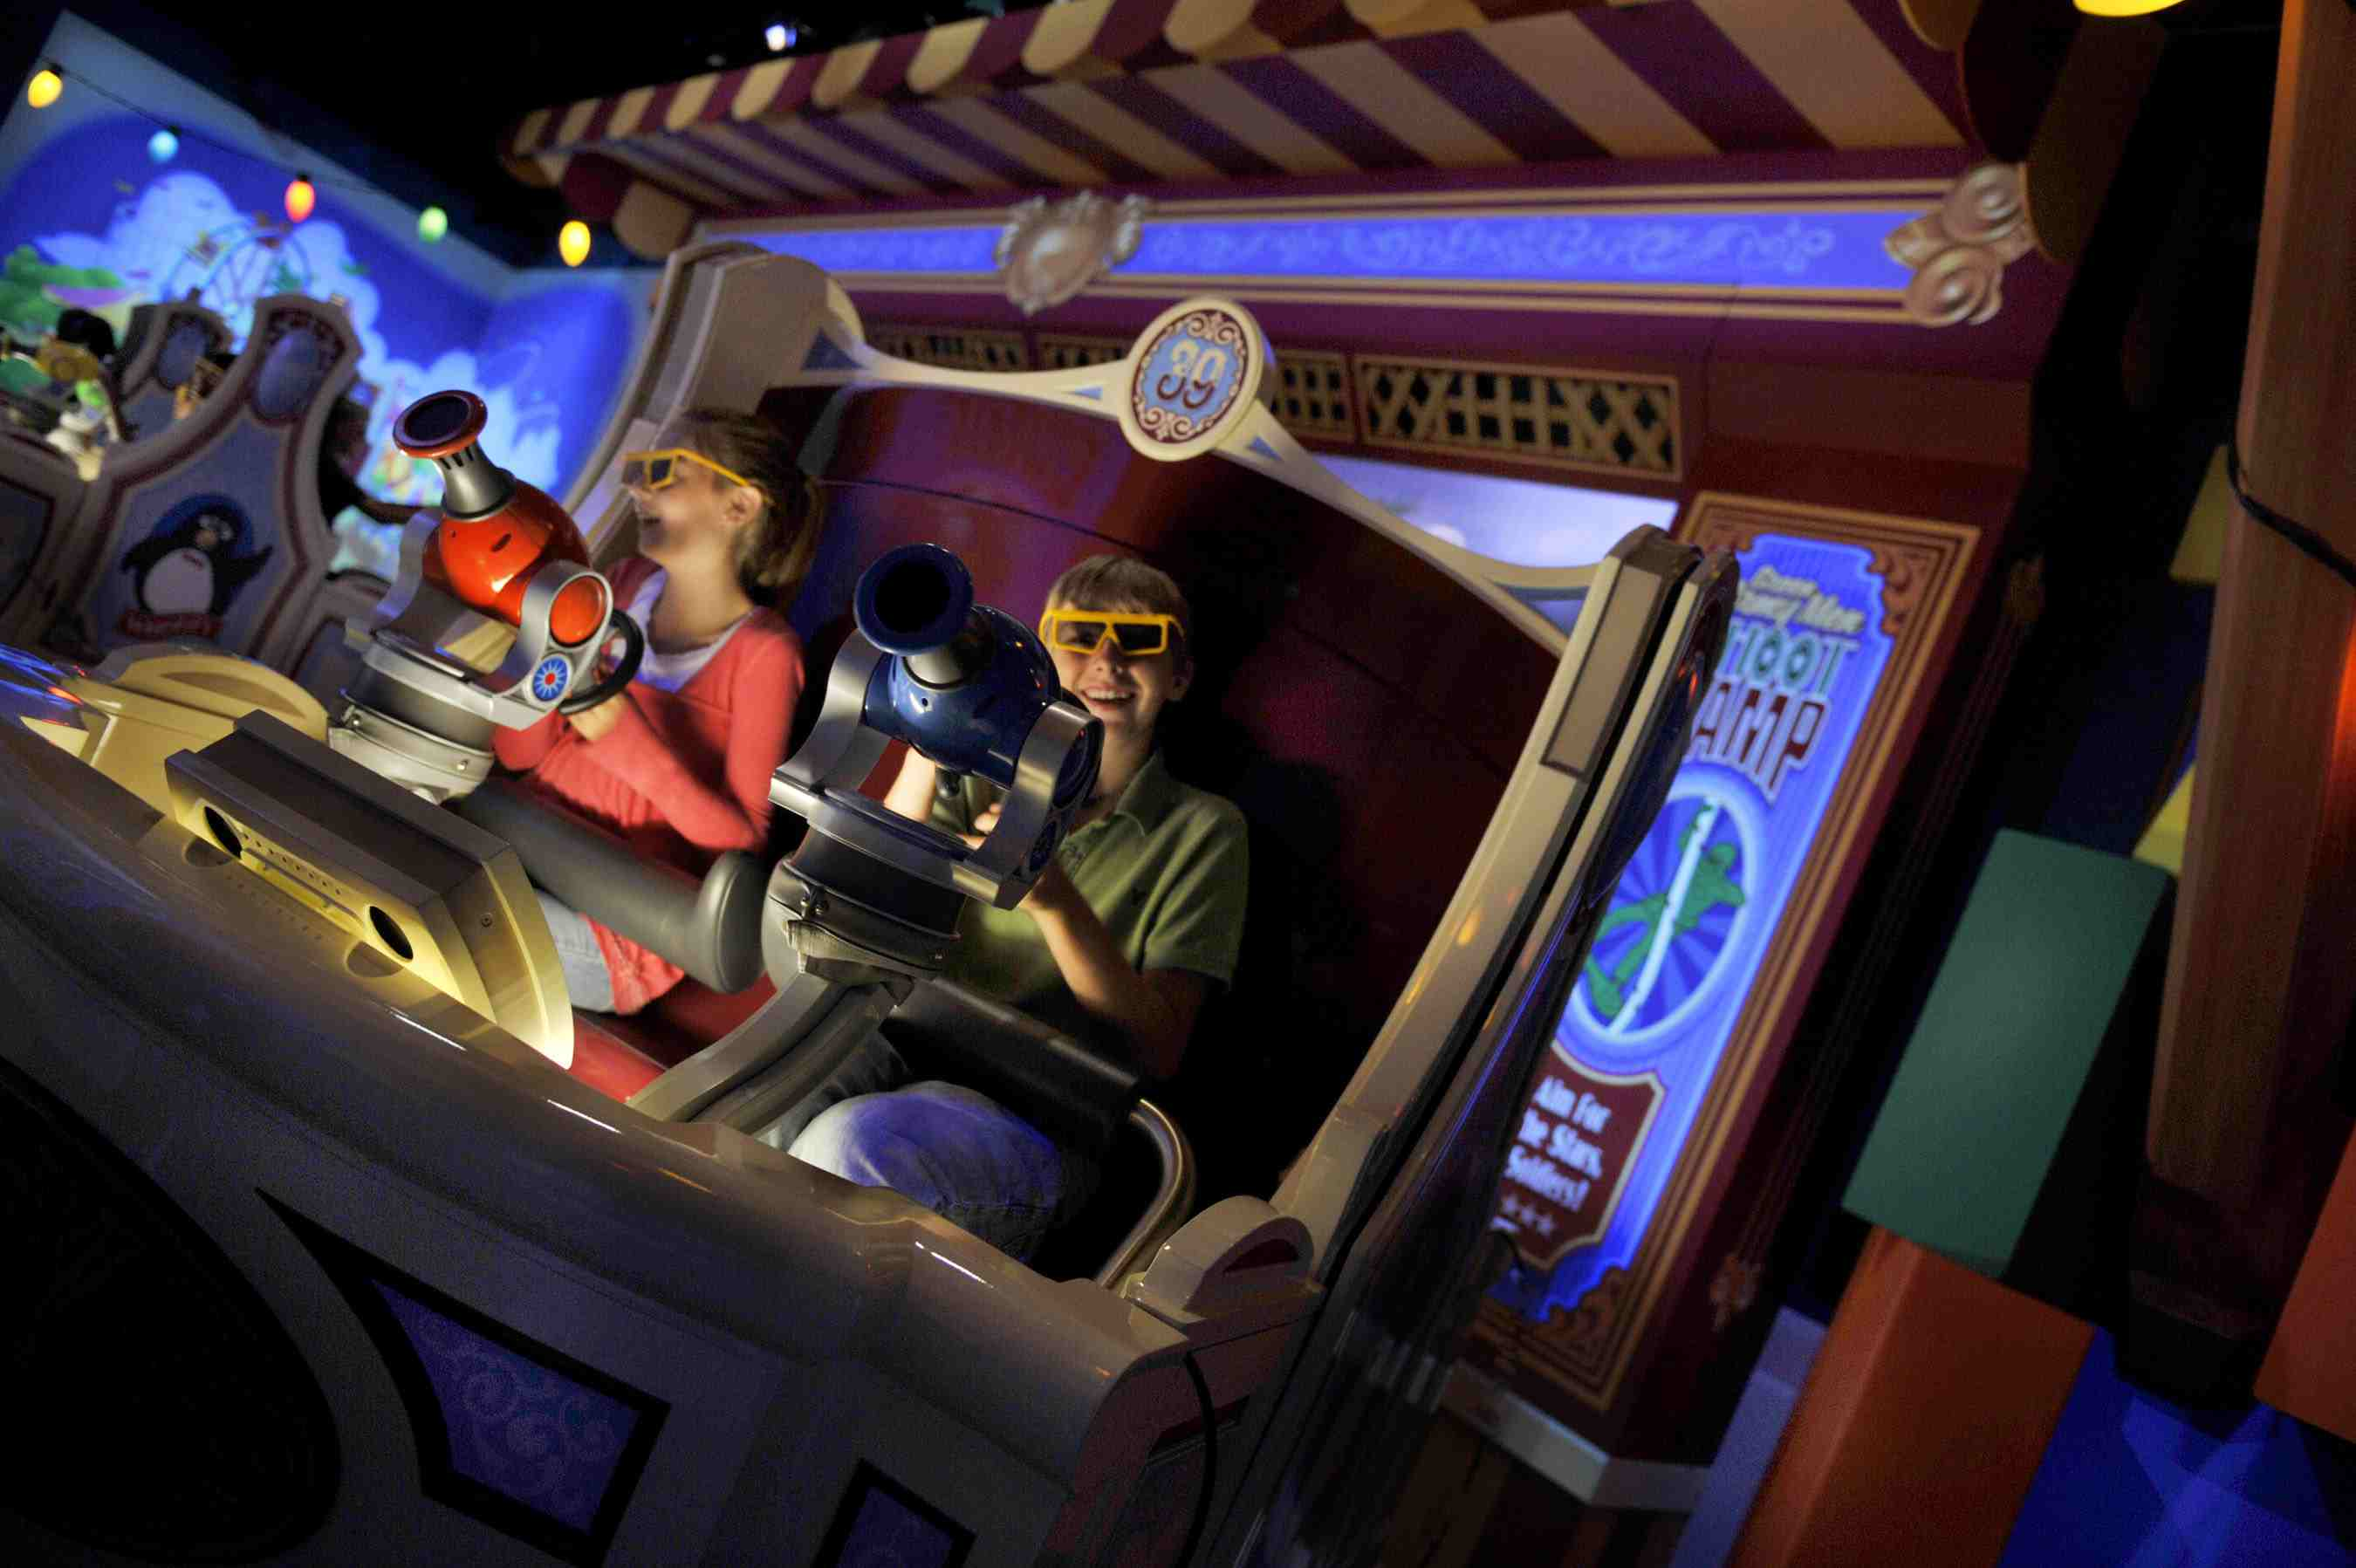 If you are seeking thrills beyond the Studios park, check out the top Walt Disney World thrill rides. If thrills are NOT your thing (or the thing of someone you know who is Disney World-bound), consider heading over to Disney's Hollywood Studios for wimps.